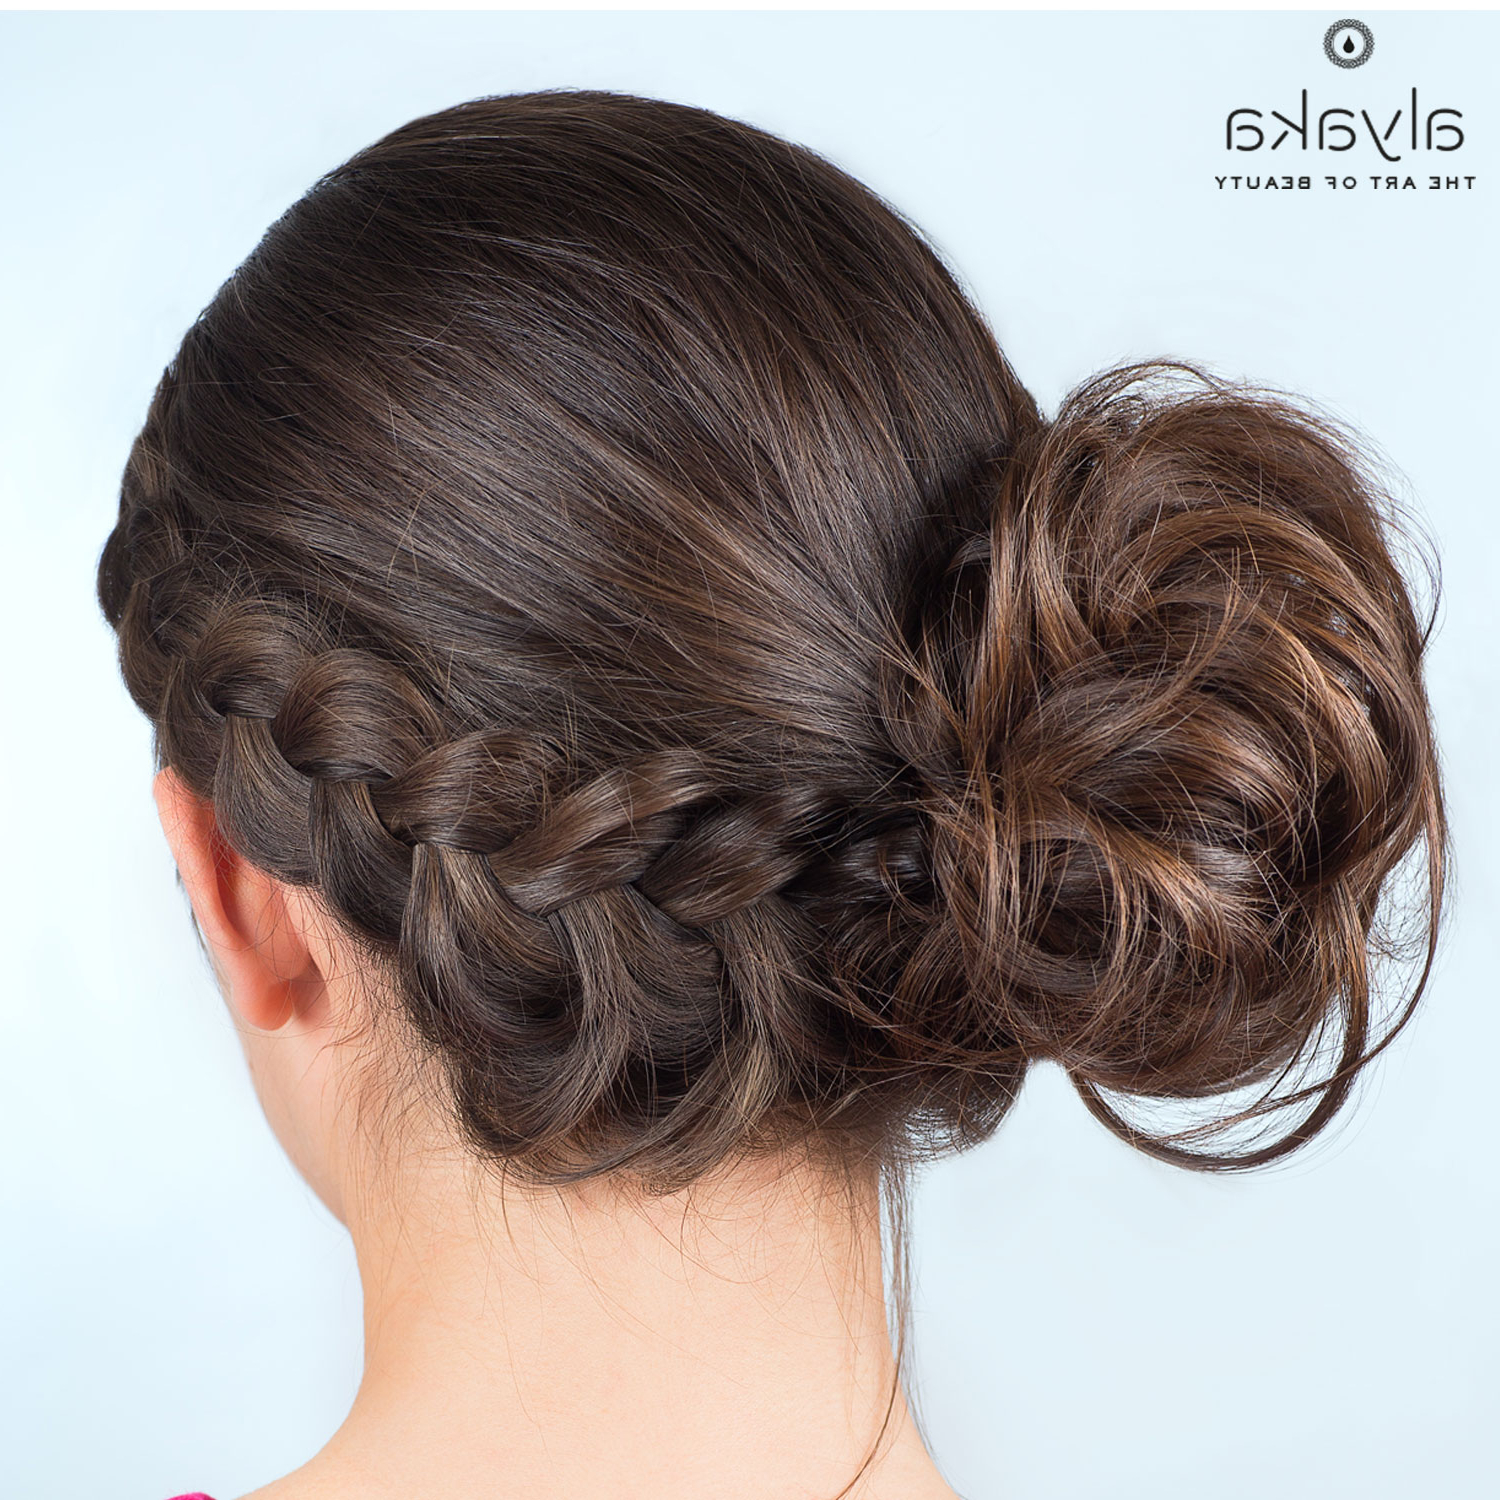 22 Easy Hairstyles For Busy Women (View 3 of 20)